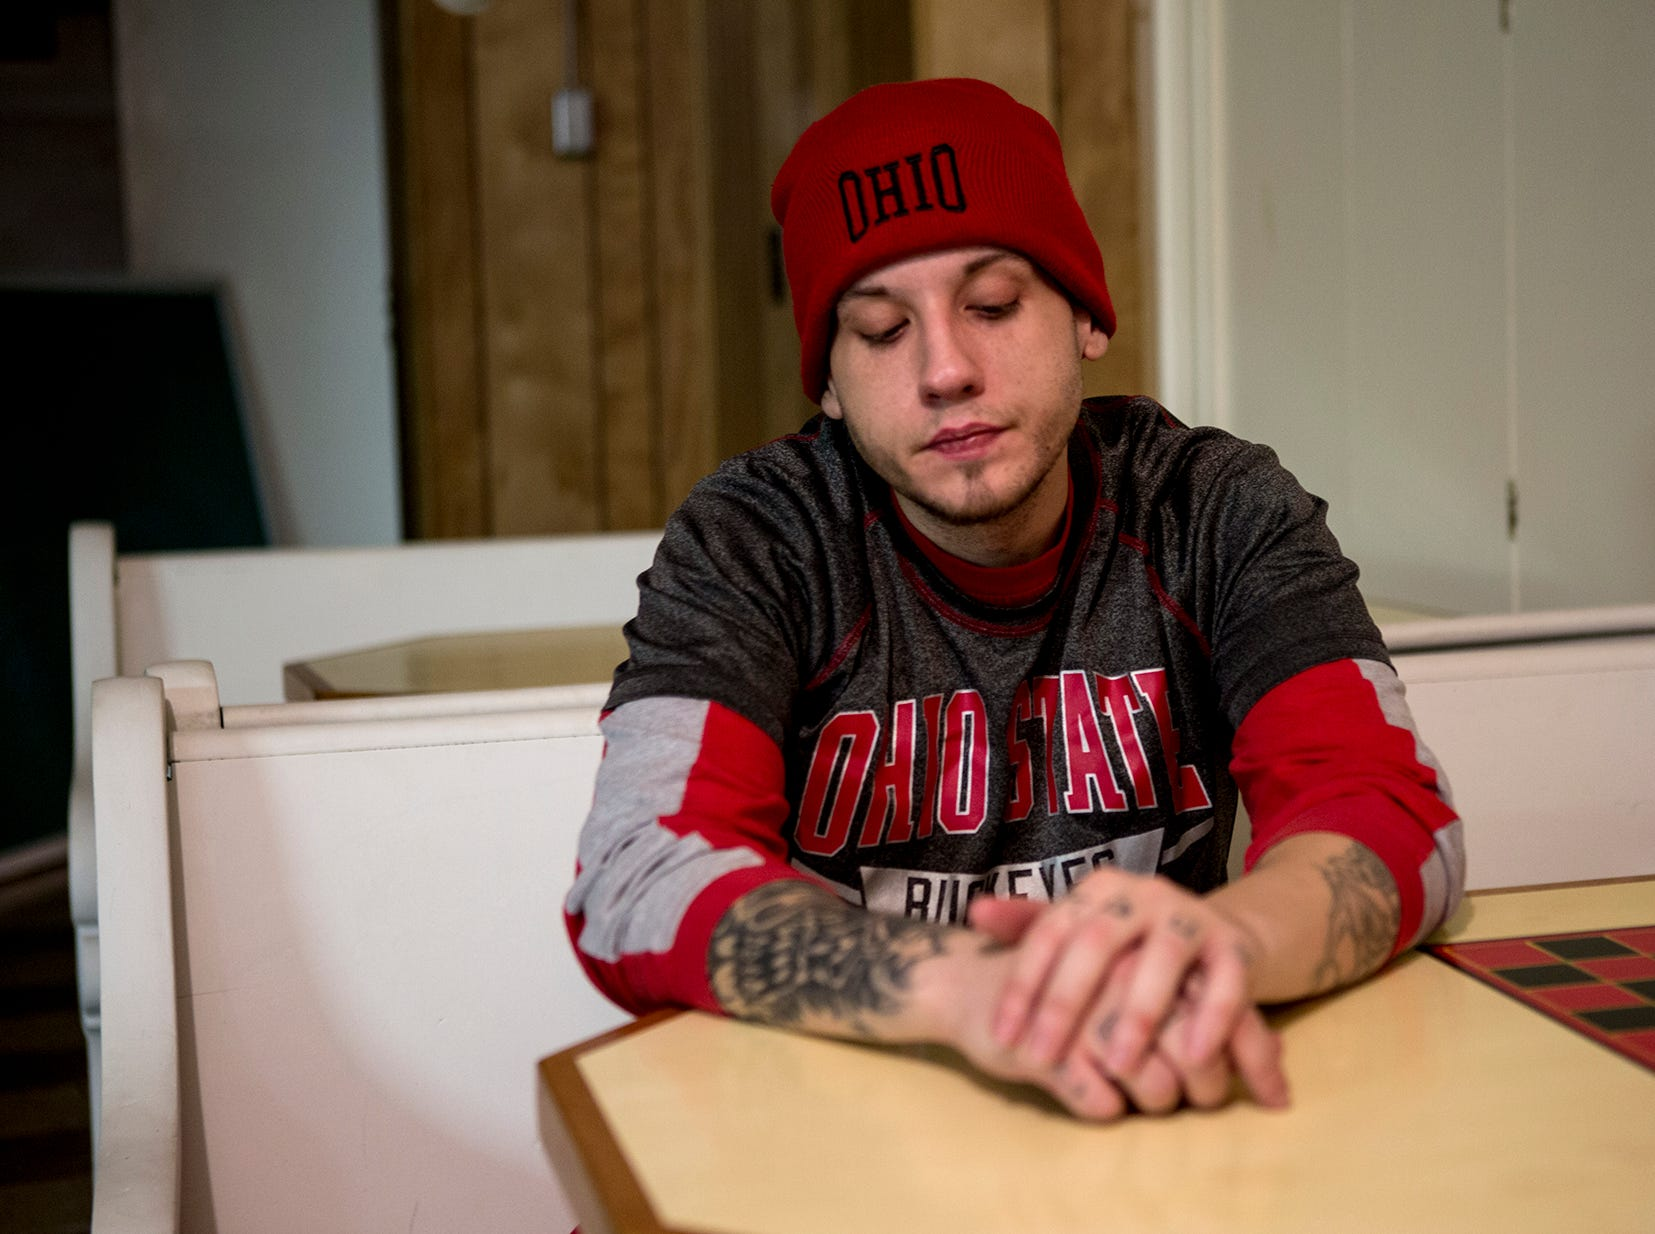 "Seth Arnone moved back to Newark where he had lived while in foster care. He said he started dealing drugs before trying them and becoming addicted. ""Its humbling"" he said of being homeless. Arnone lived on the streets for about 2 and a half years.   ""One thing led to another and I lost custody of my children, and that's what really got a hold of me. And I'm walking down 21st street, walking and walking, and I go by this church and I go in and ask for a prayer."" The man inside asked what he should pray for and Arnone thought about it and responded with ""my recovery.""  While homeless Arnone was sleeping under bridges and tarps, parks, anywhere he could to stay dry.  Now that he is in a home and clean from drugs Arnone works hard to give back. That's why when temperatures reached below zero in January he volunteered at the warming shelter at Faith United. ""You start to lose hope after awhile and think you can never get away from it, so it's nice to see other people that have came from where you came from and know that it's possible."""